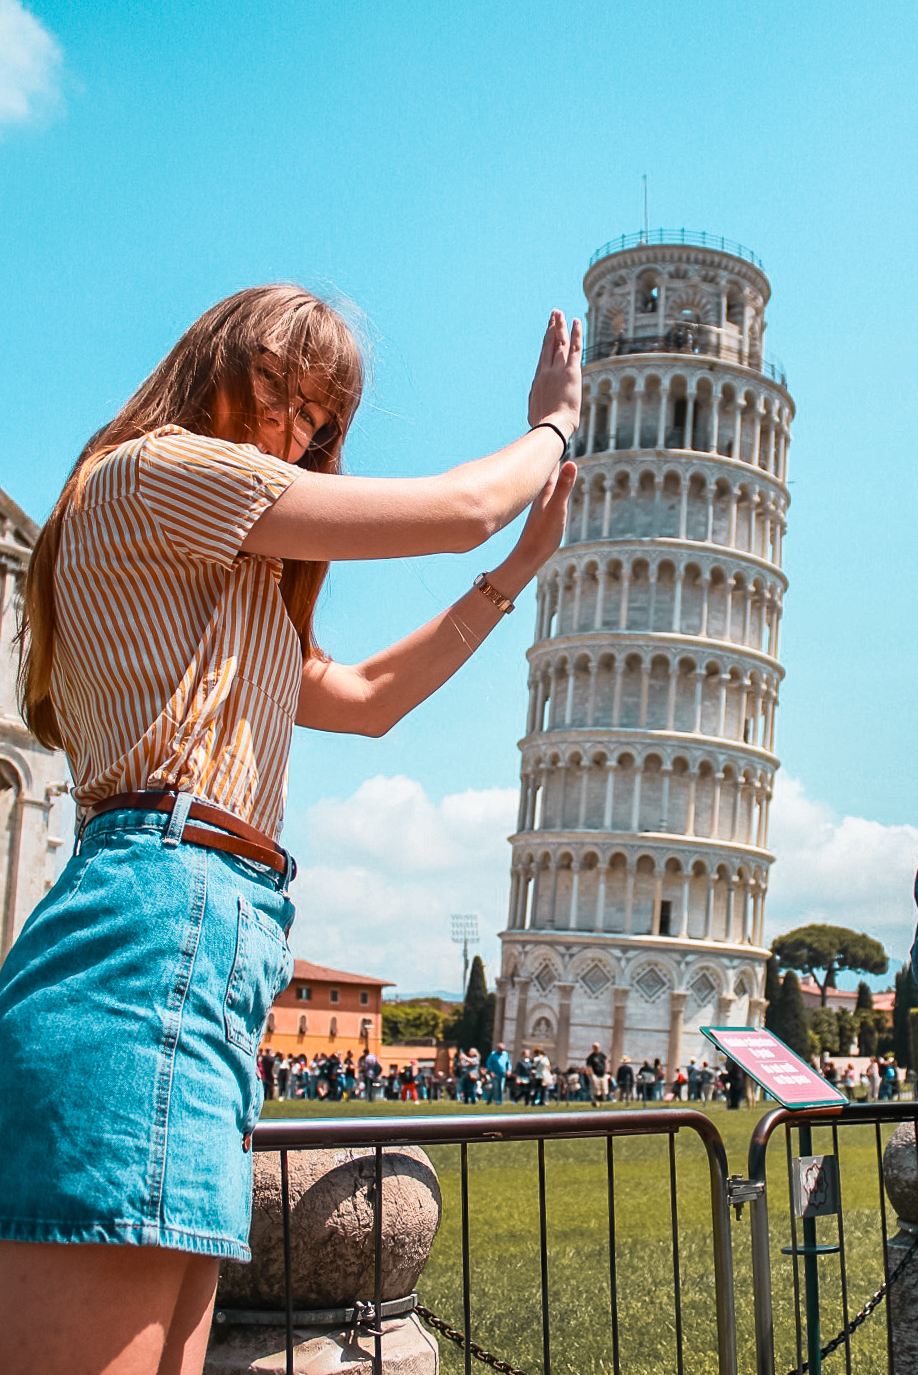 Pisa travel photography